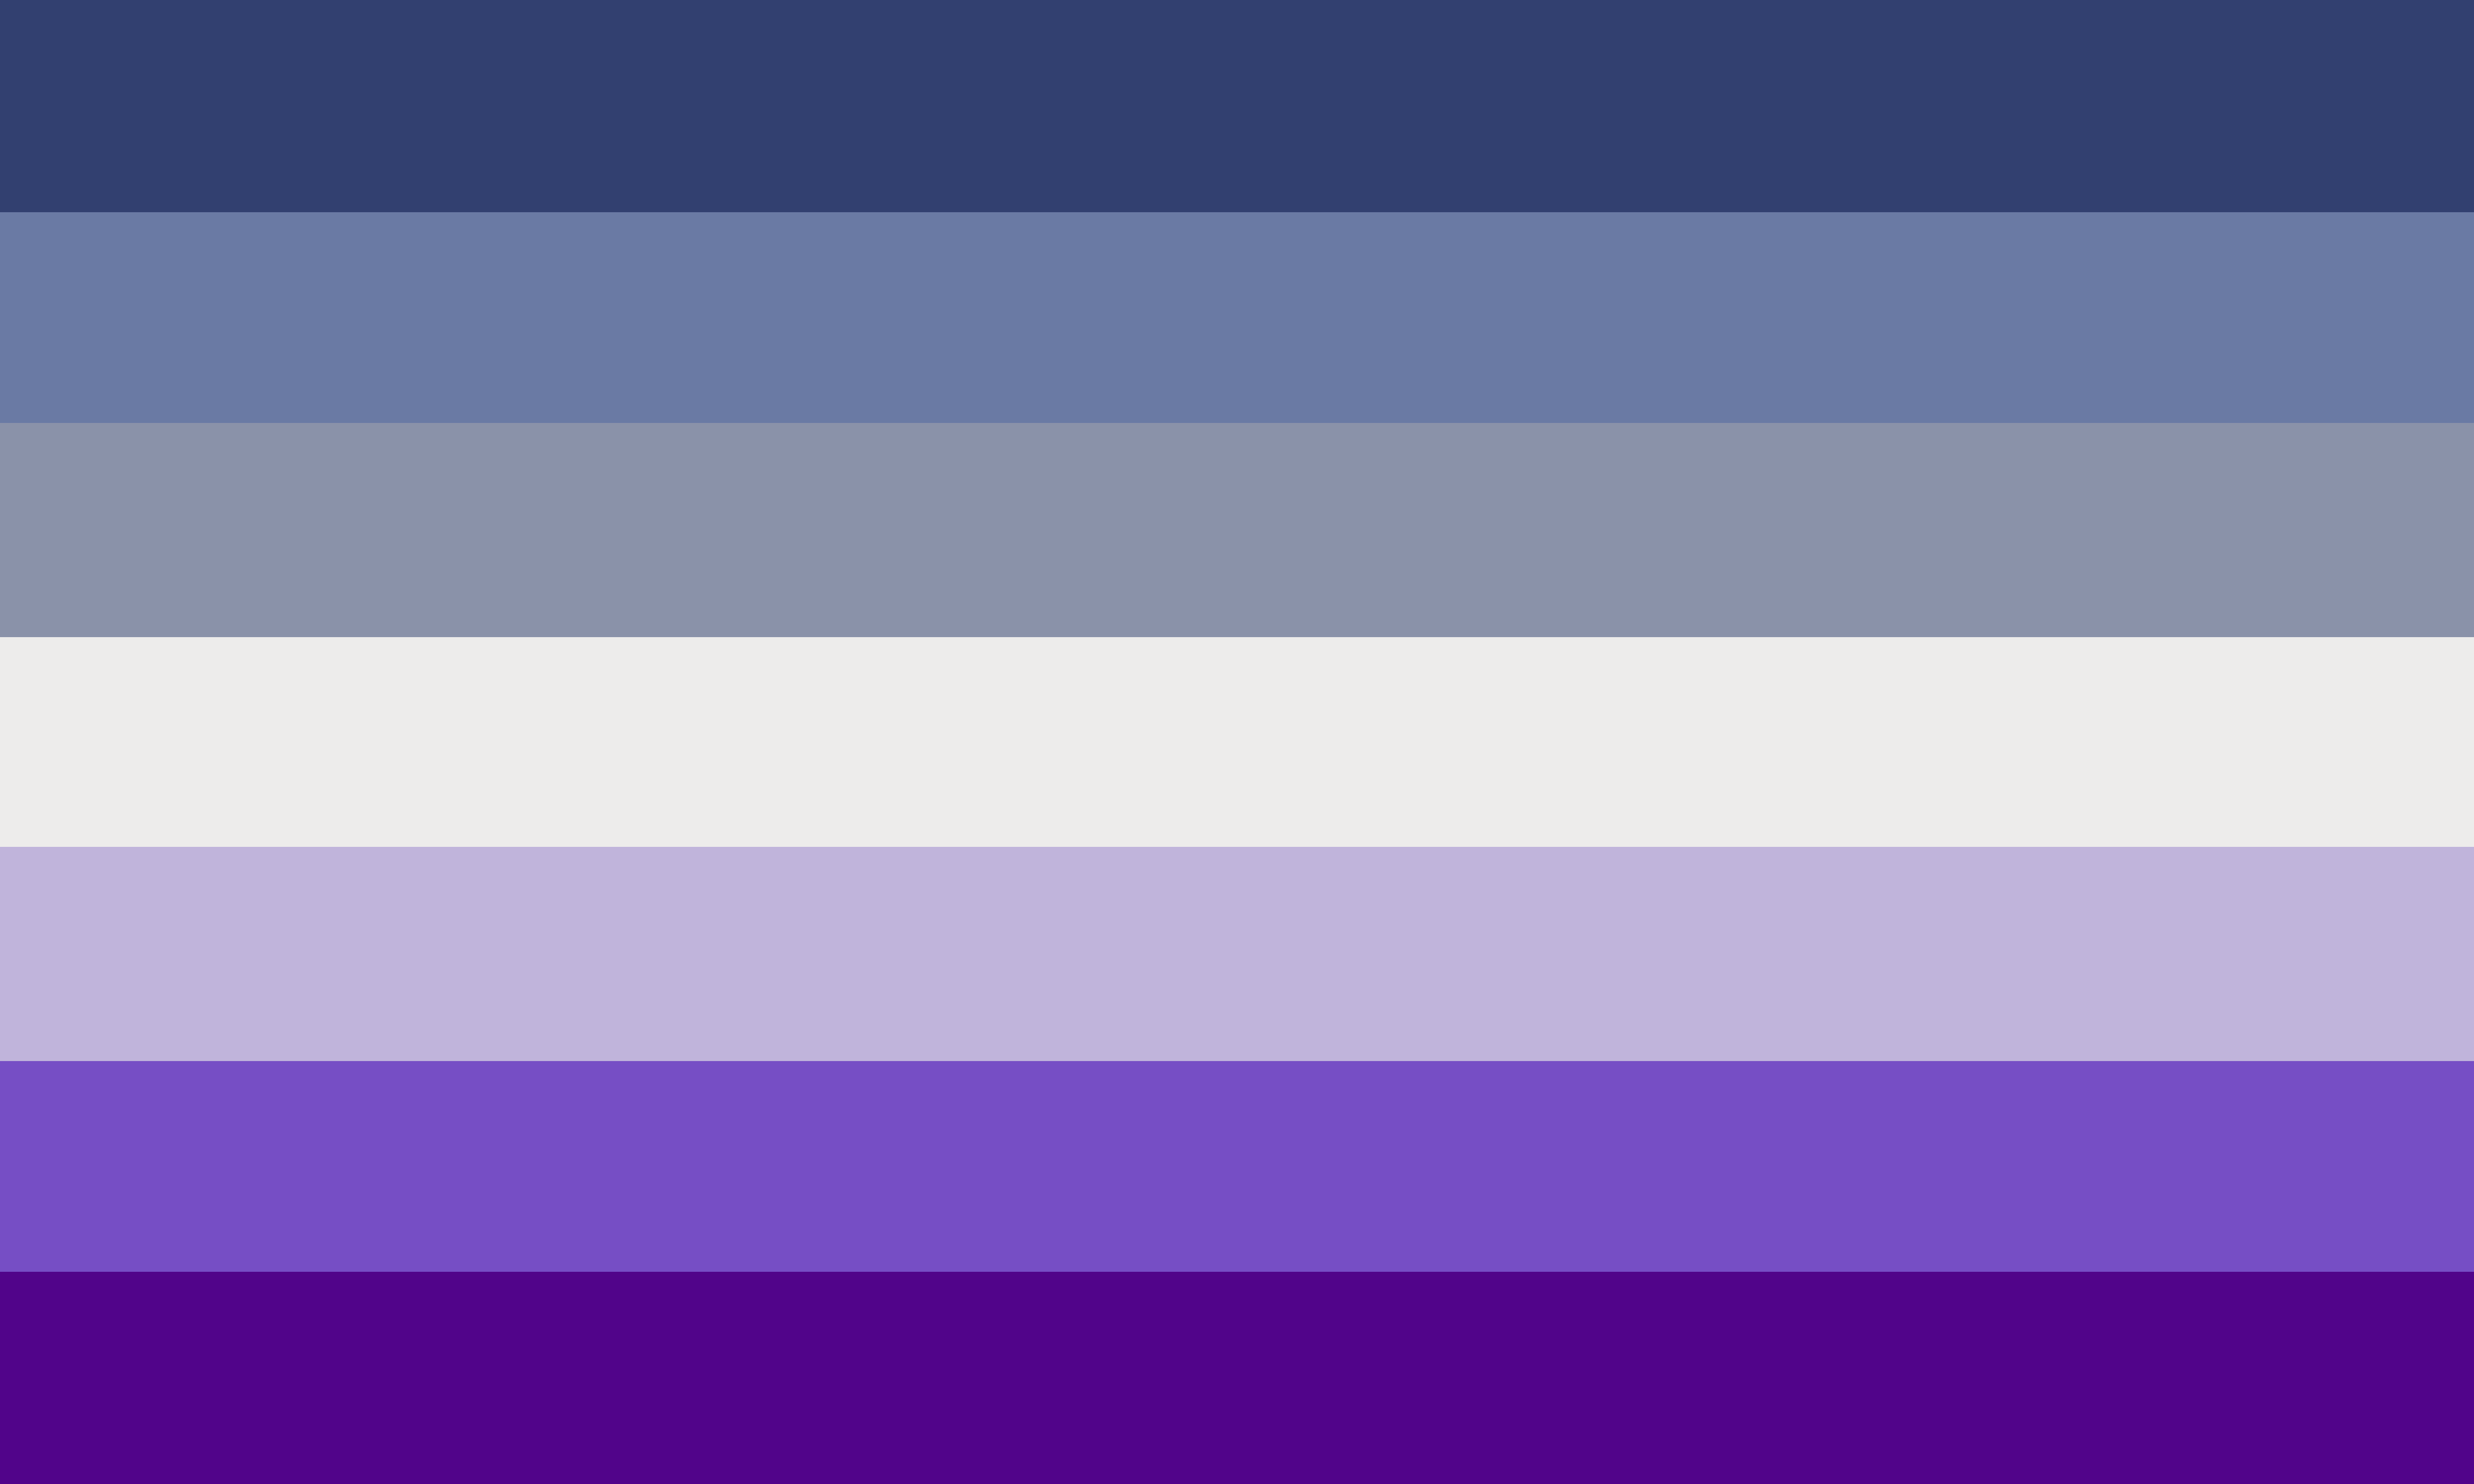 Butch Lesbian by Pride-Flags